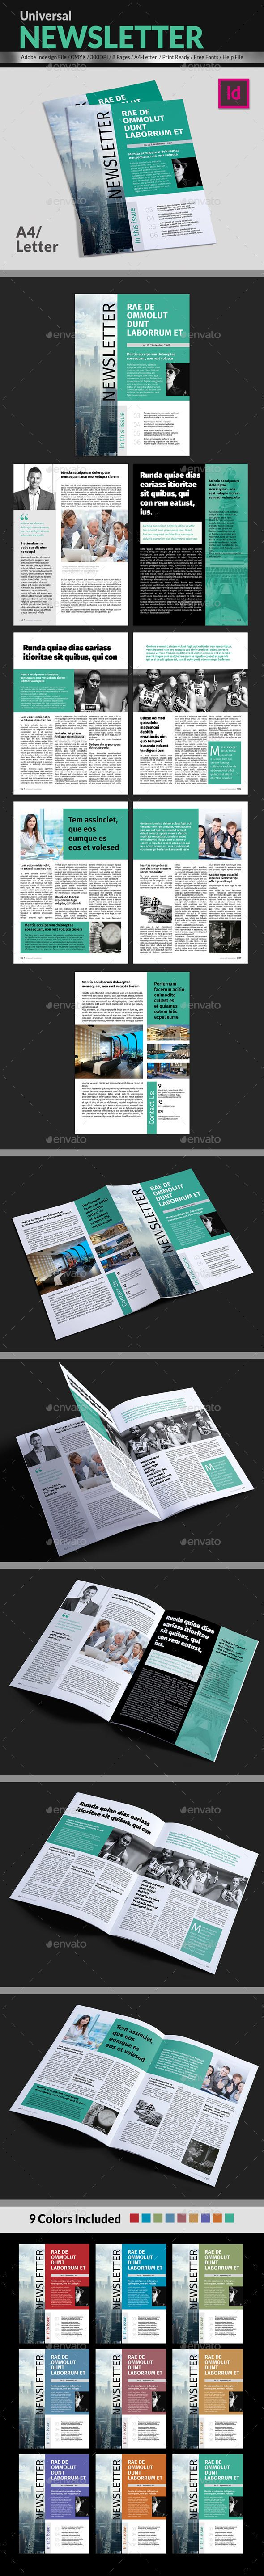 Universal Newsletter Template InDesign INDD